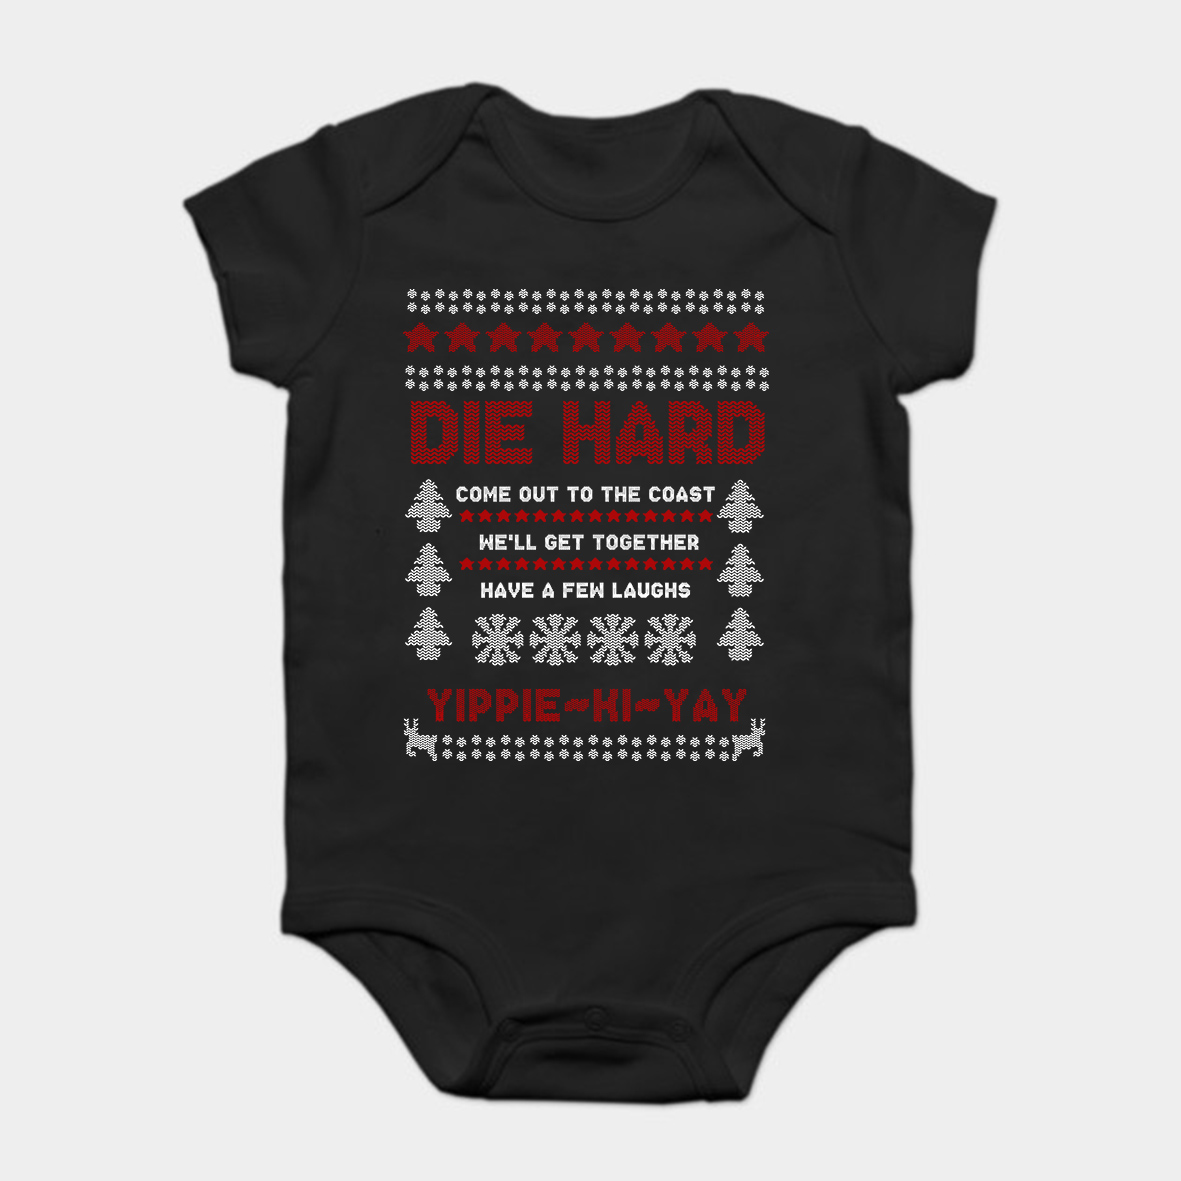 Come Out to The Coast Well Get Together Ugly Christmas T-Shirt